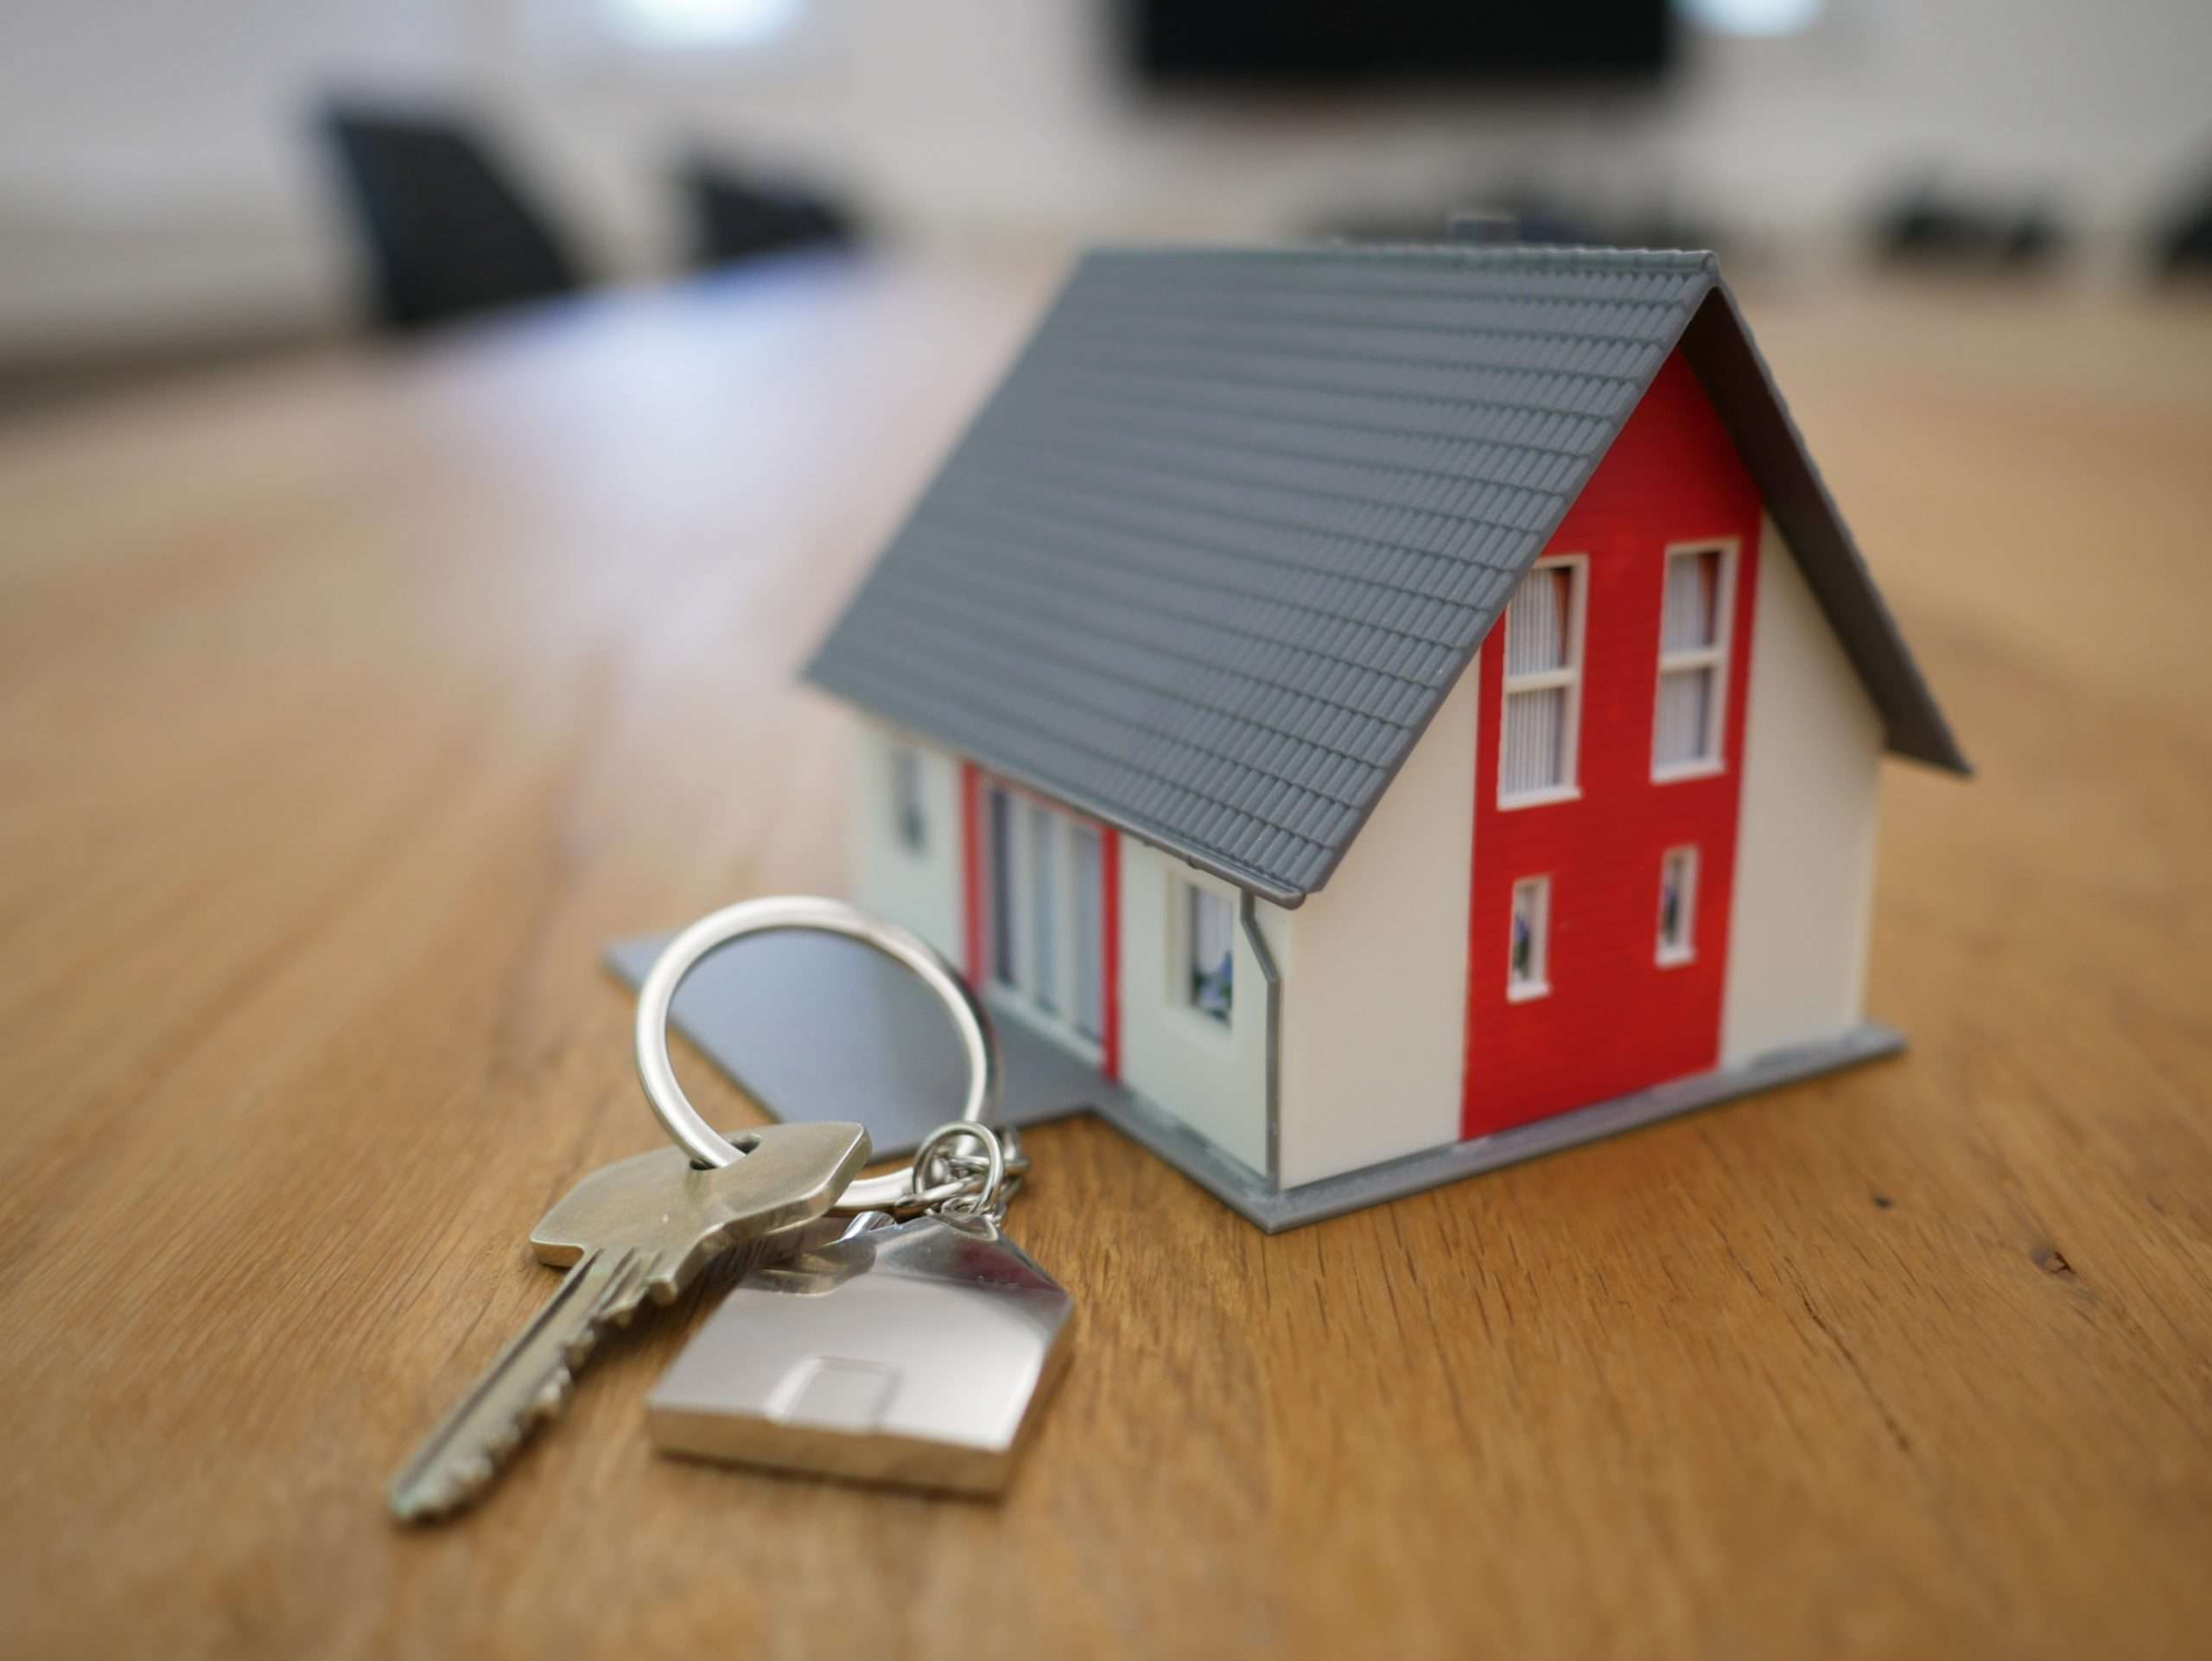 key chain with keys and a small house next to it